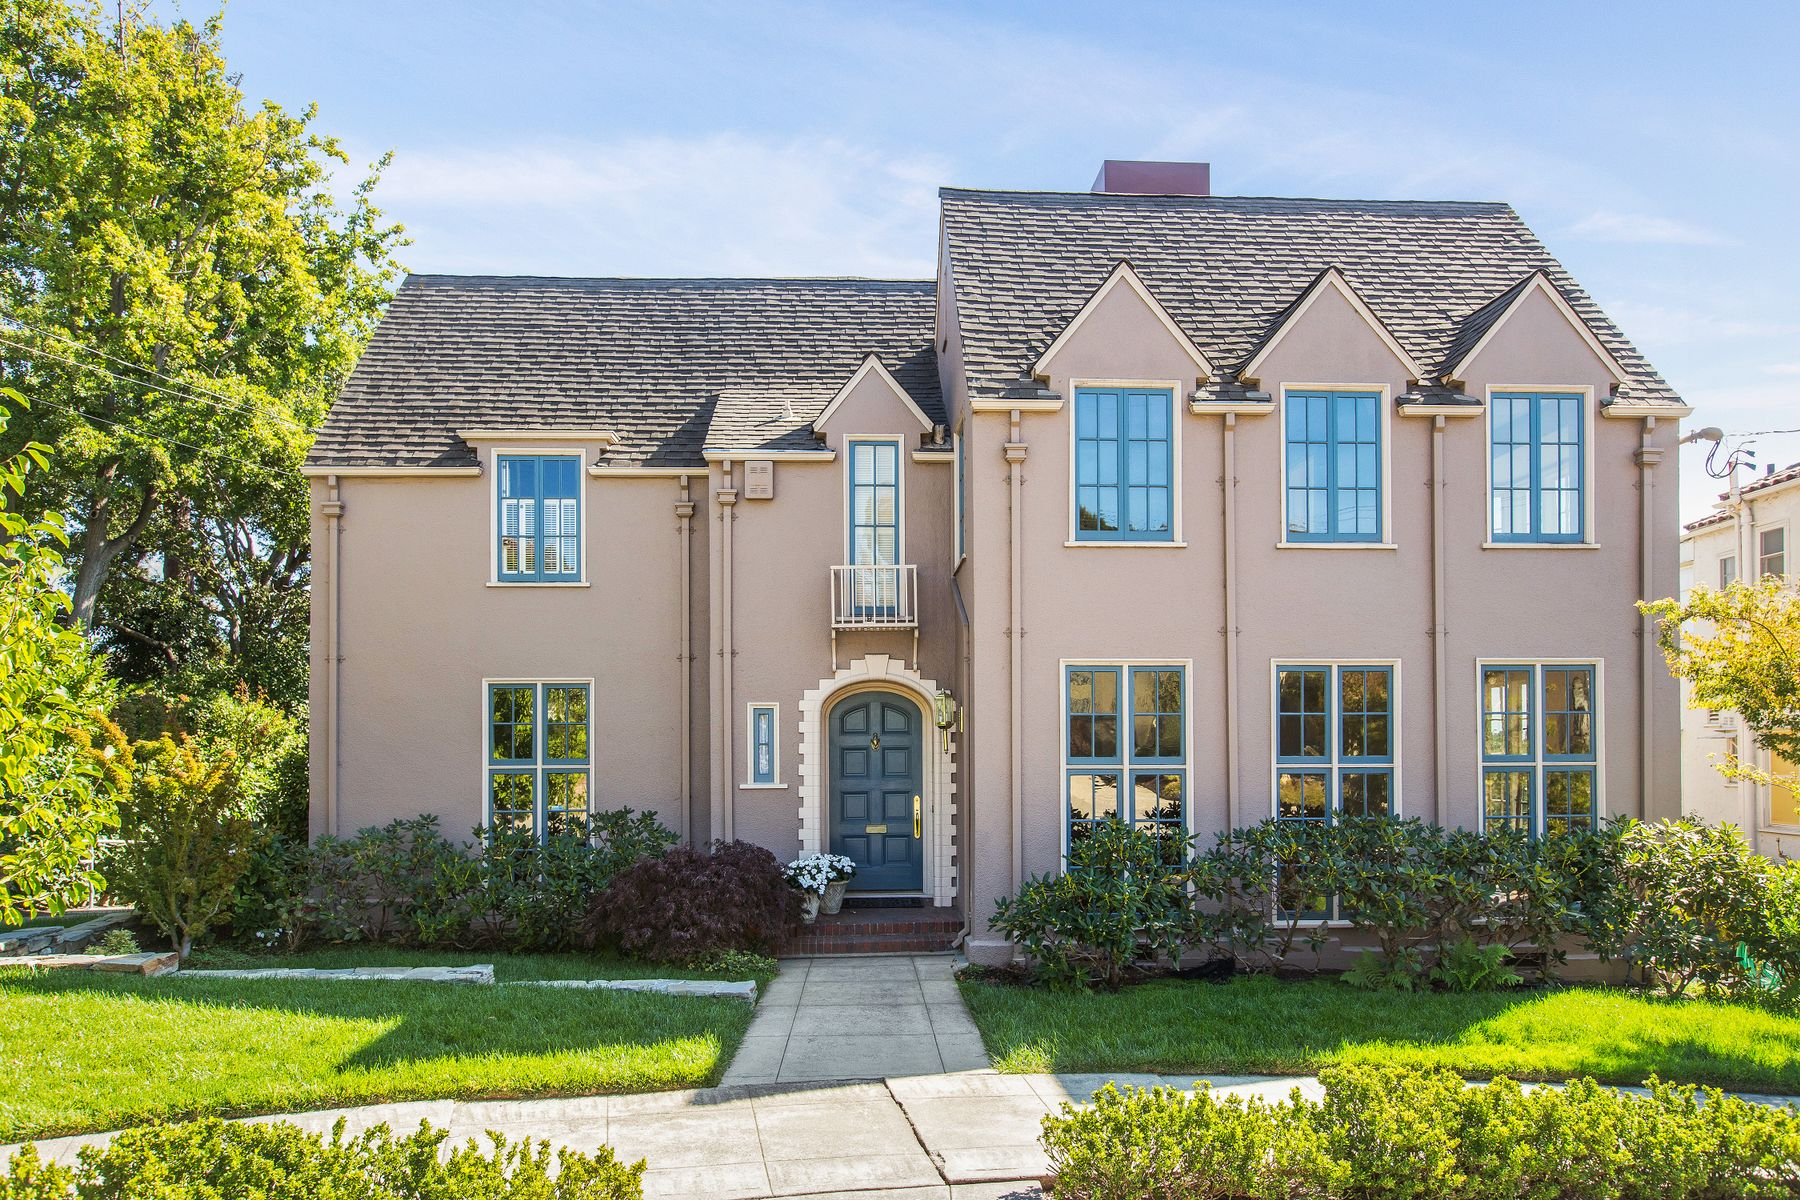 Single Family Homes for Sale at Pristine and Elegant in Entirety 853 Paramount Rd Oakland, California 94610 United States